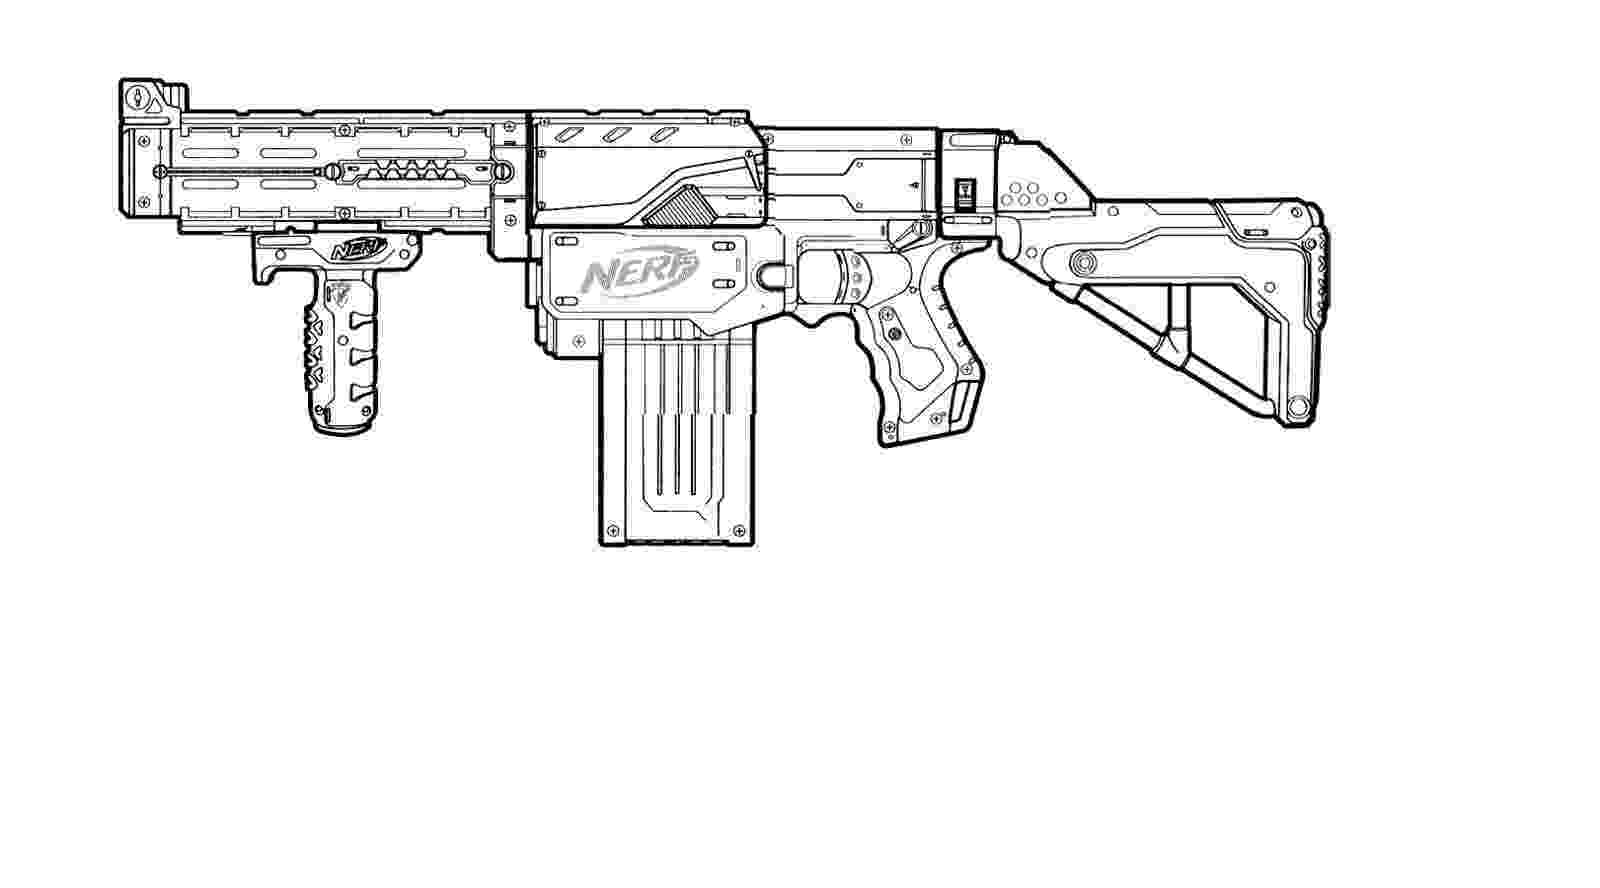 nerf gun colouring pages nerf coloring sheet google search nerf gun party ideas pages colouring nerf gun